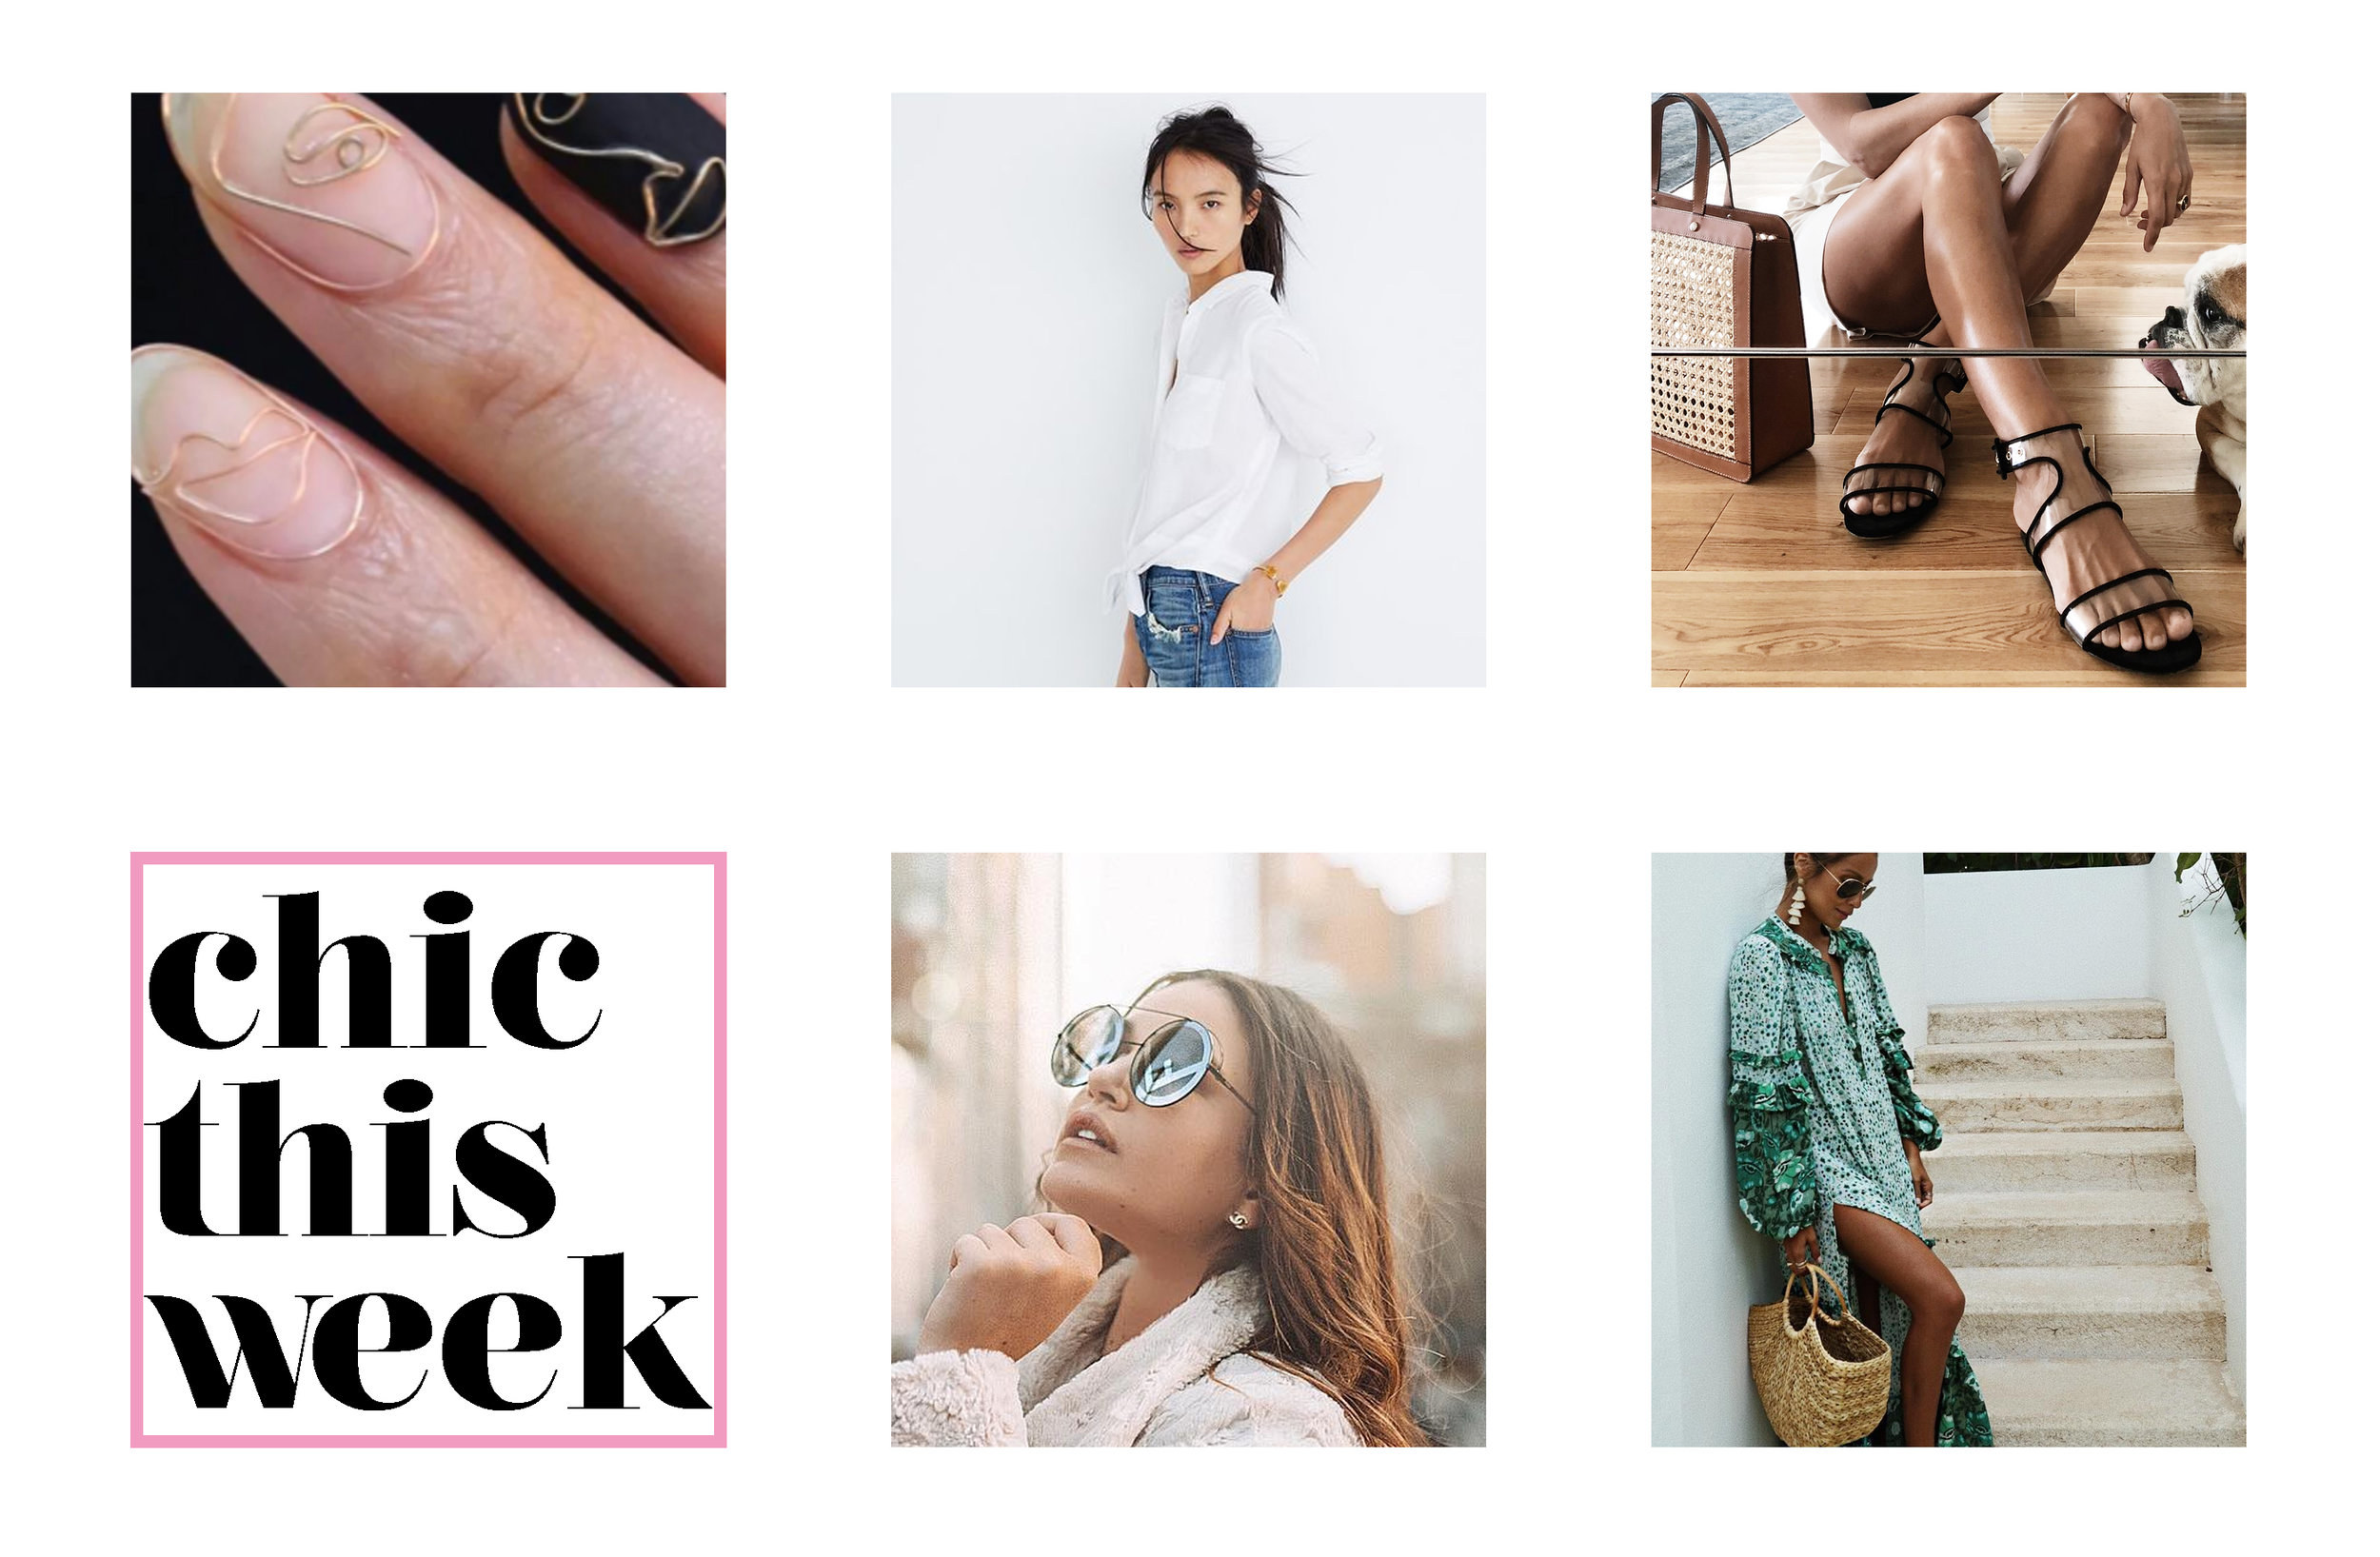 What's CHIC this week (vol. 056)